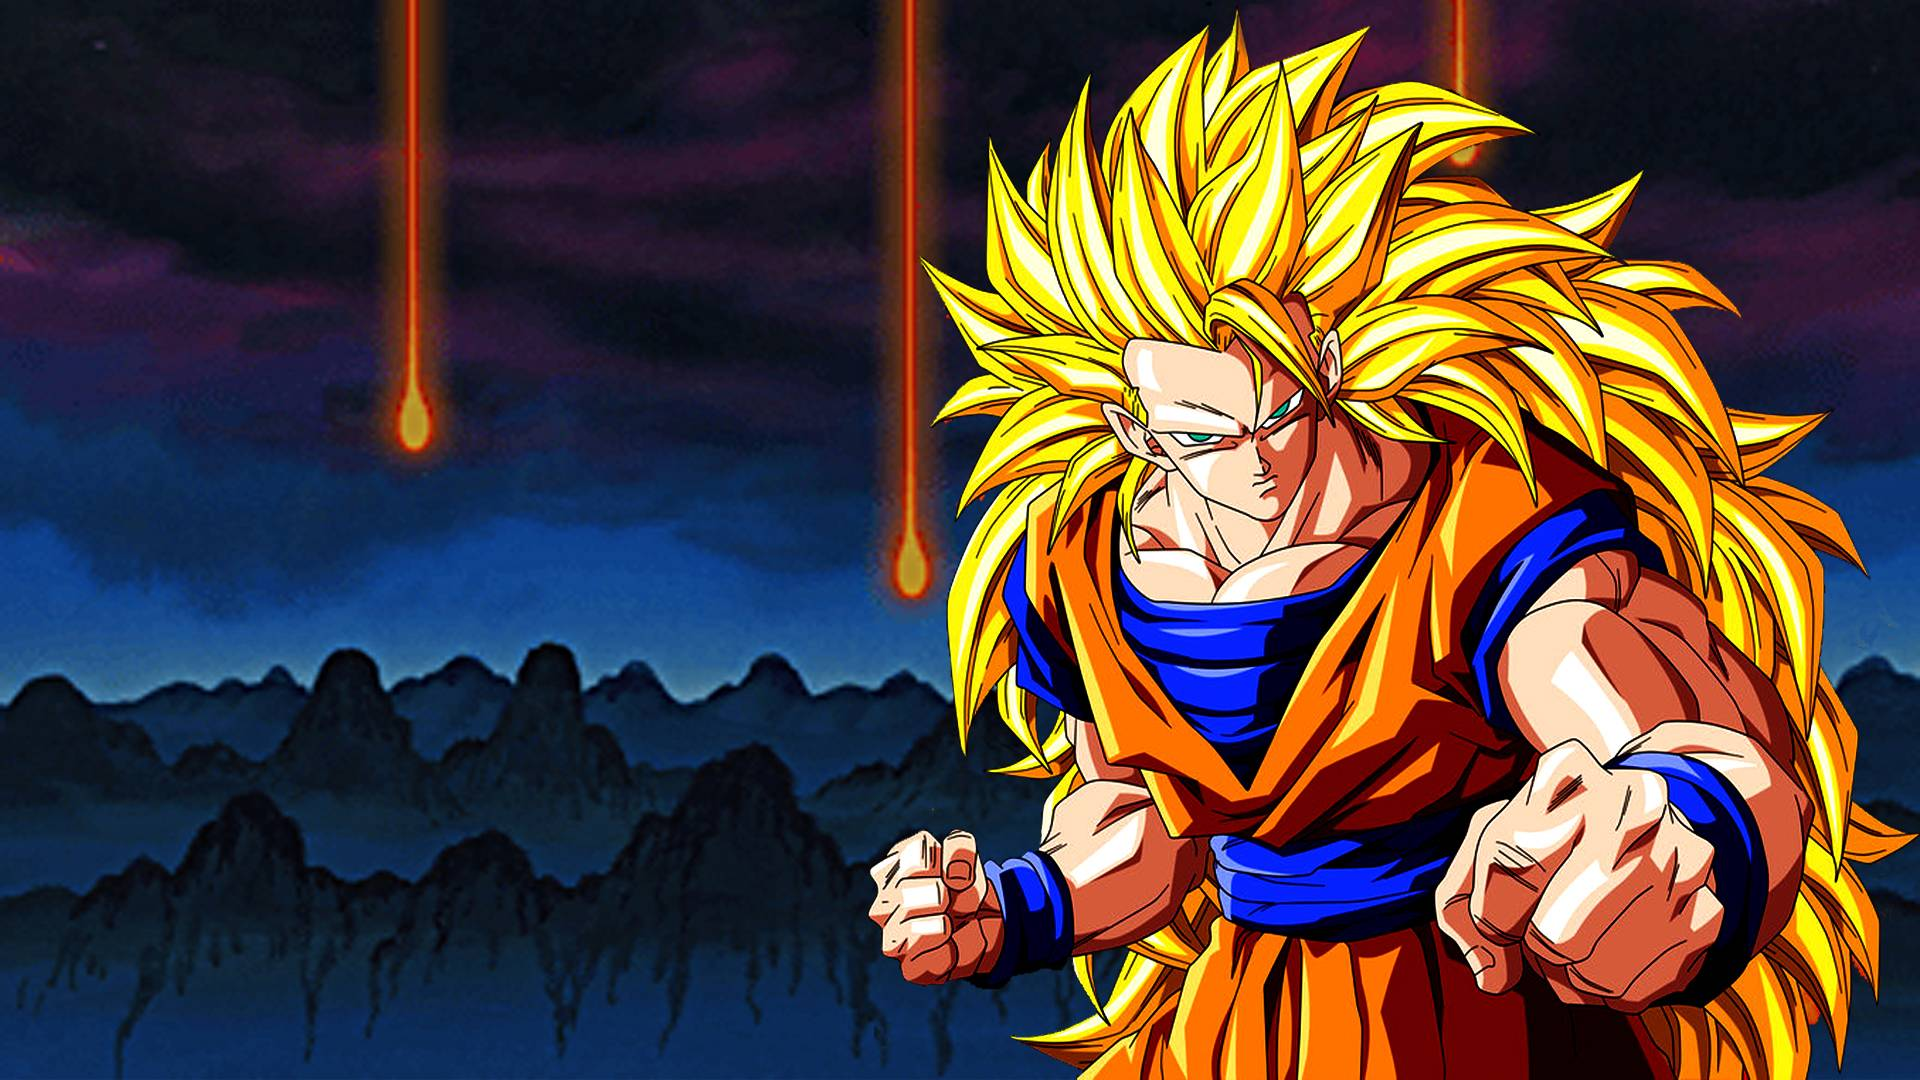 Dragon Ball Z Goku Wallpaper Full HD